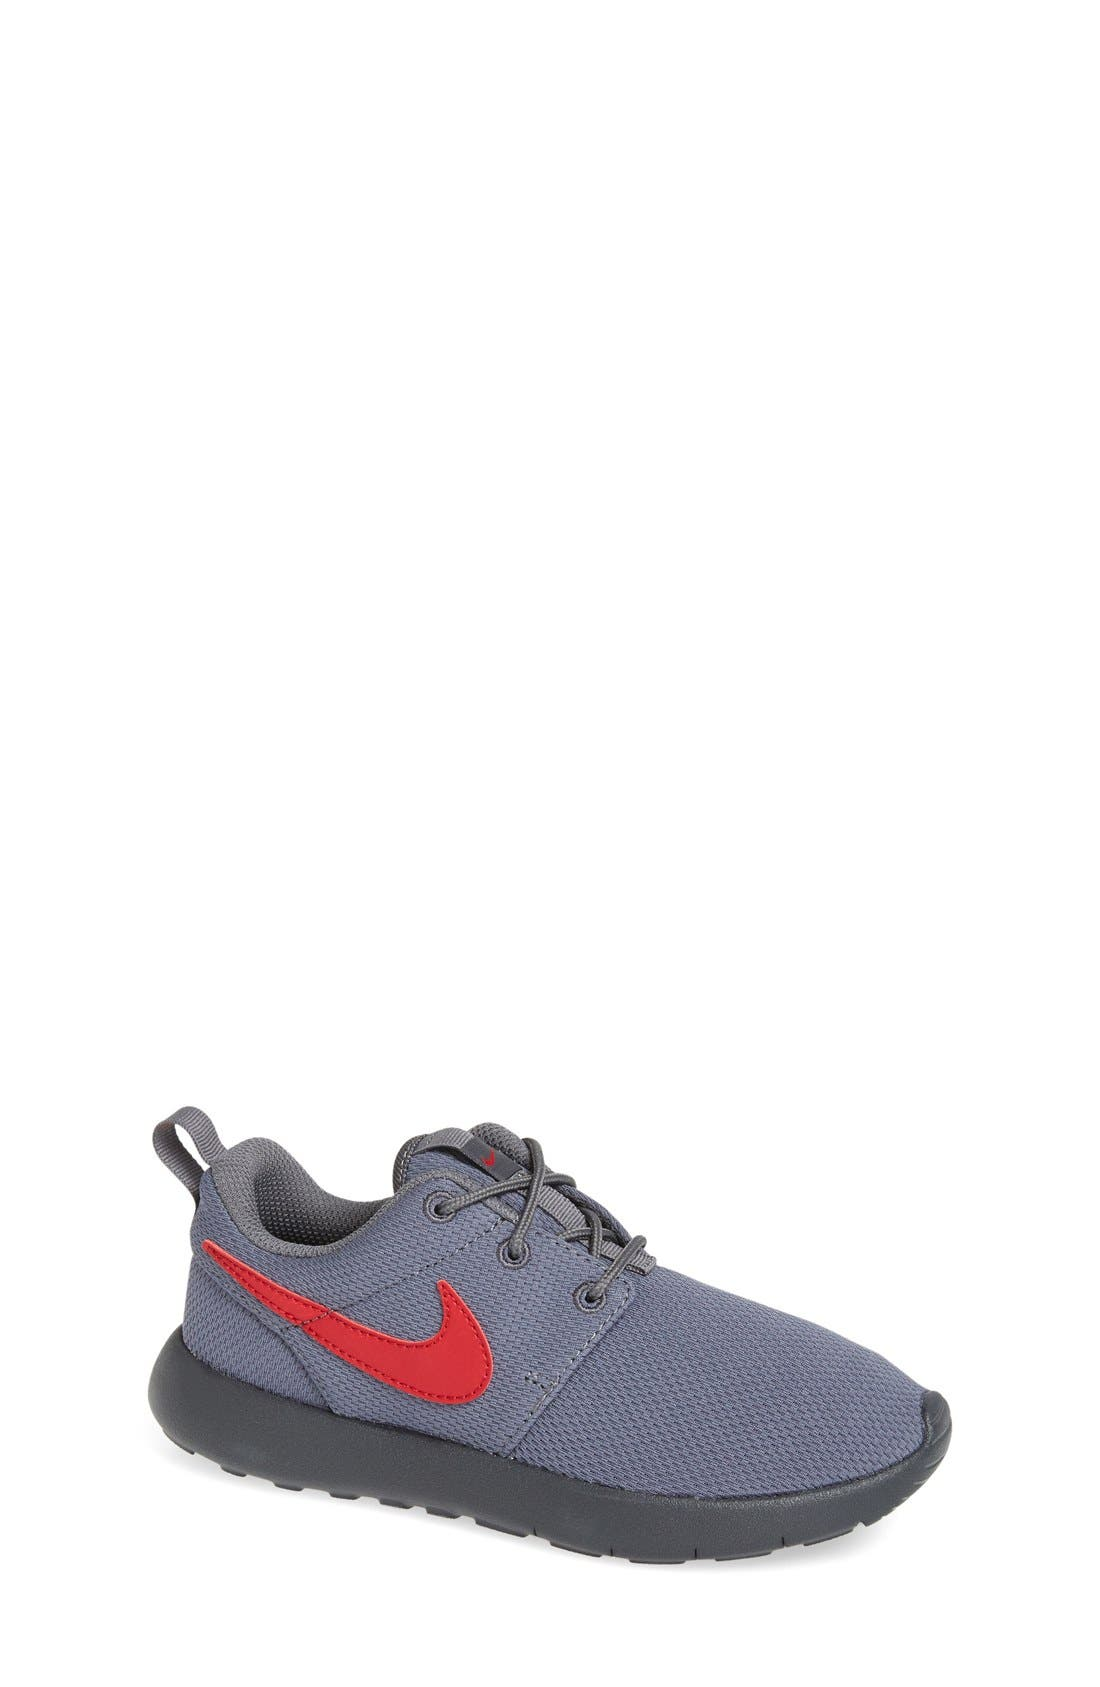 Roshe Run Sneaker,                             Main thumbnail 8, color,